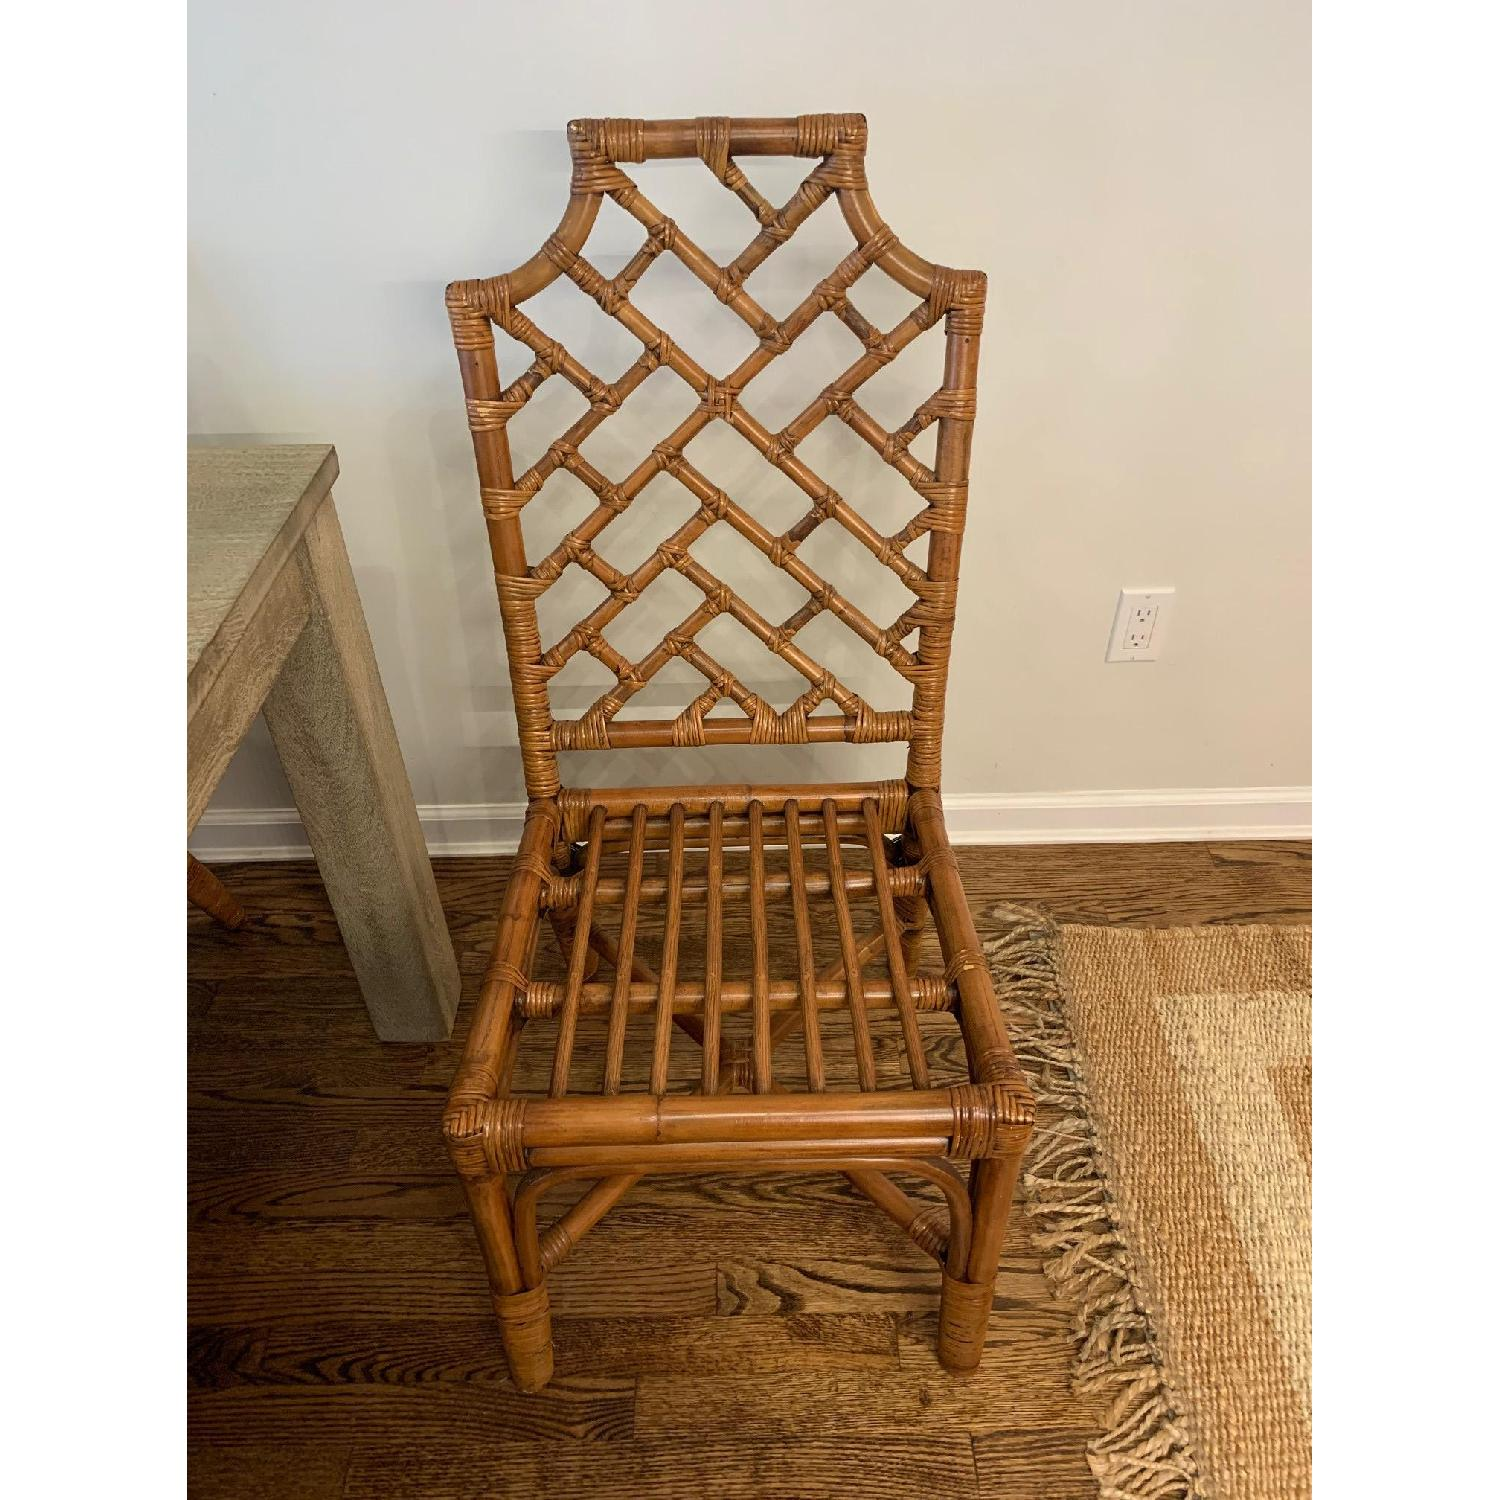 Pier 1 Rattan Dining Chairs - image-3